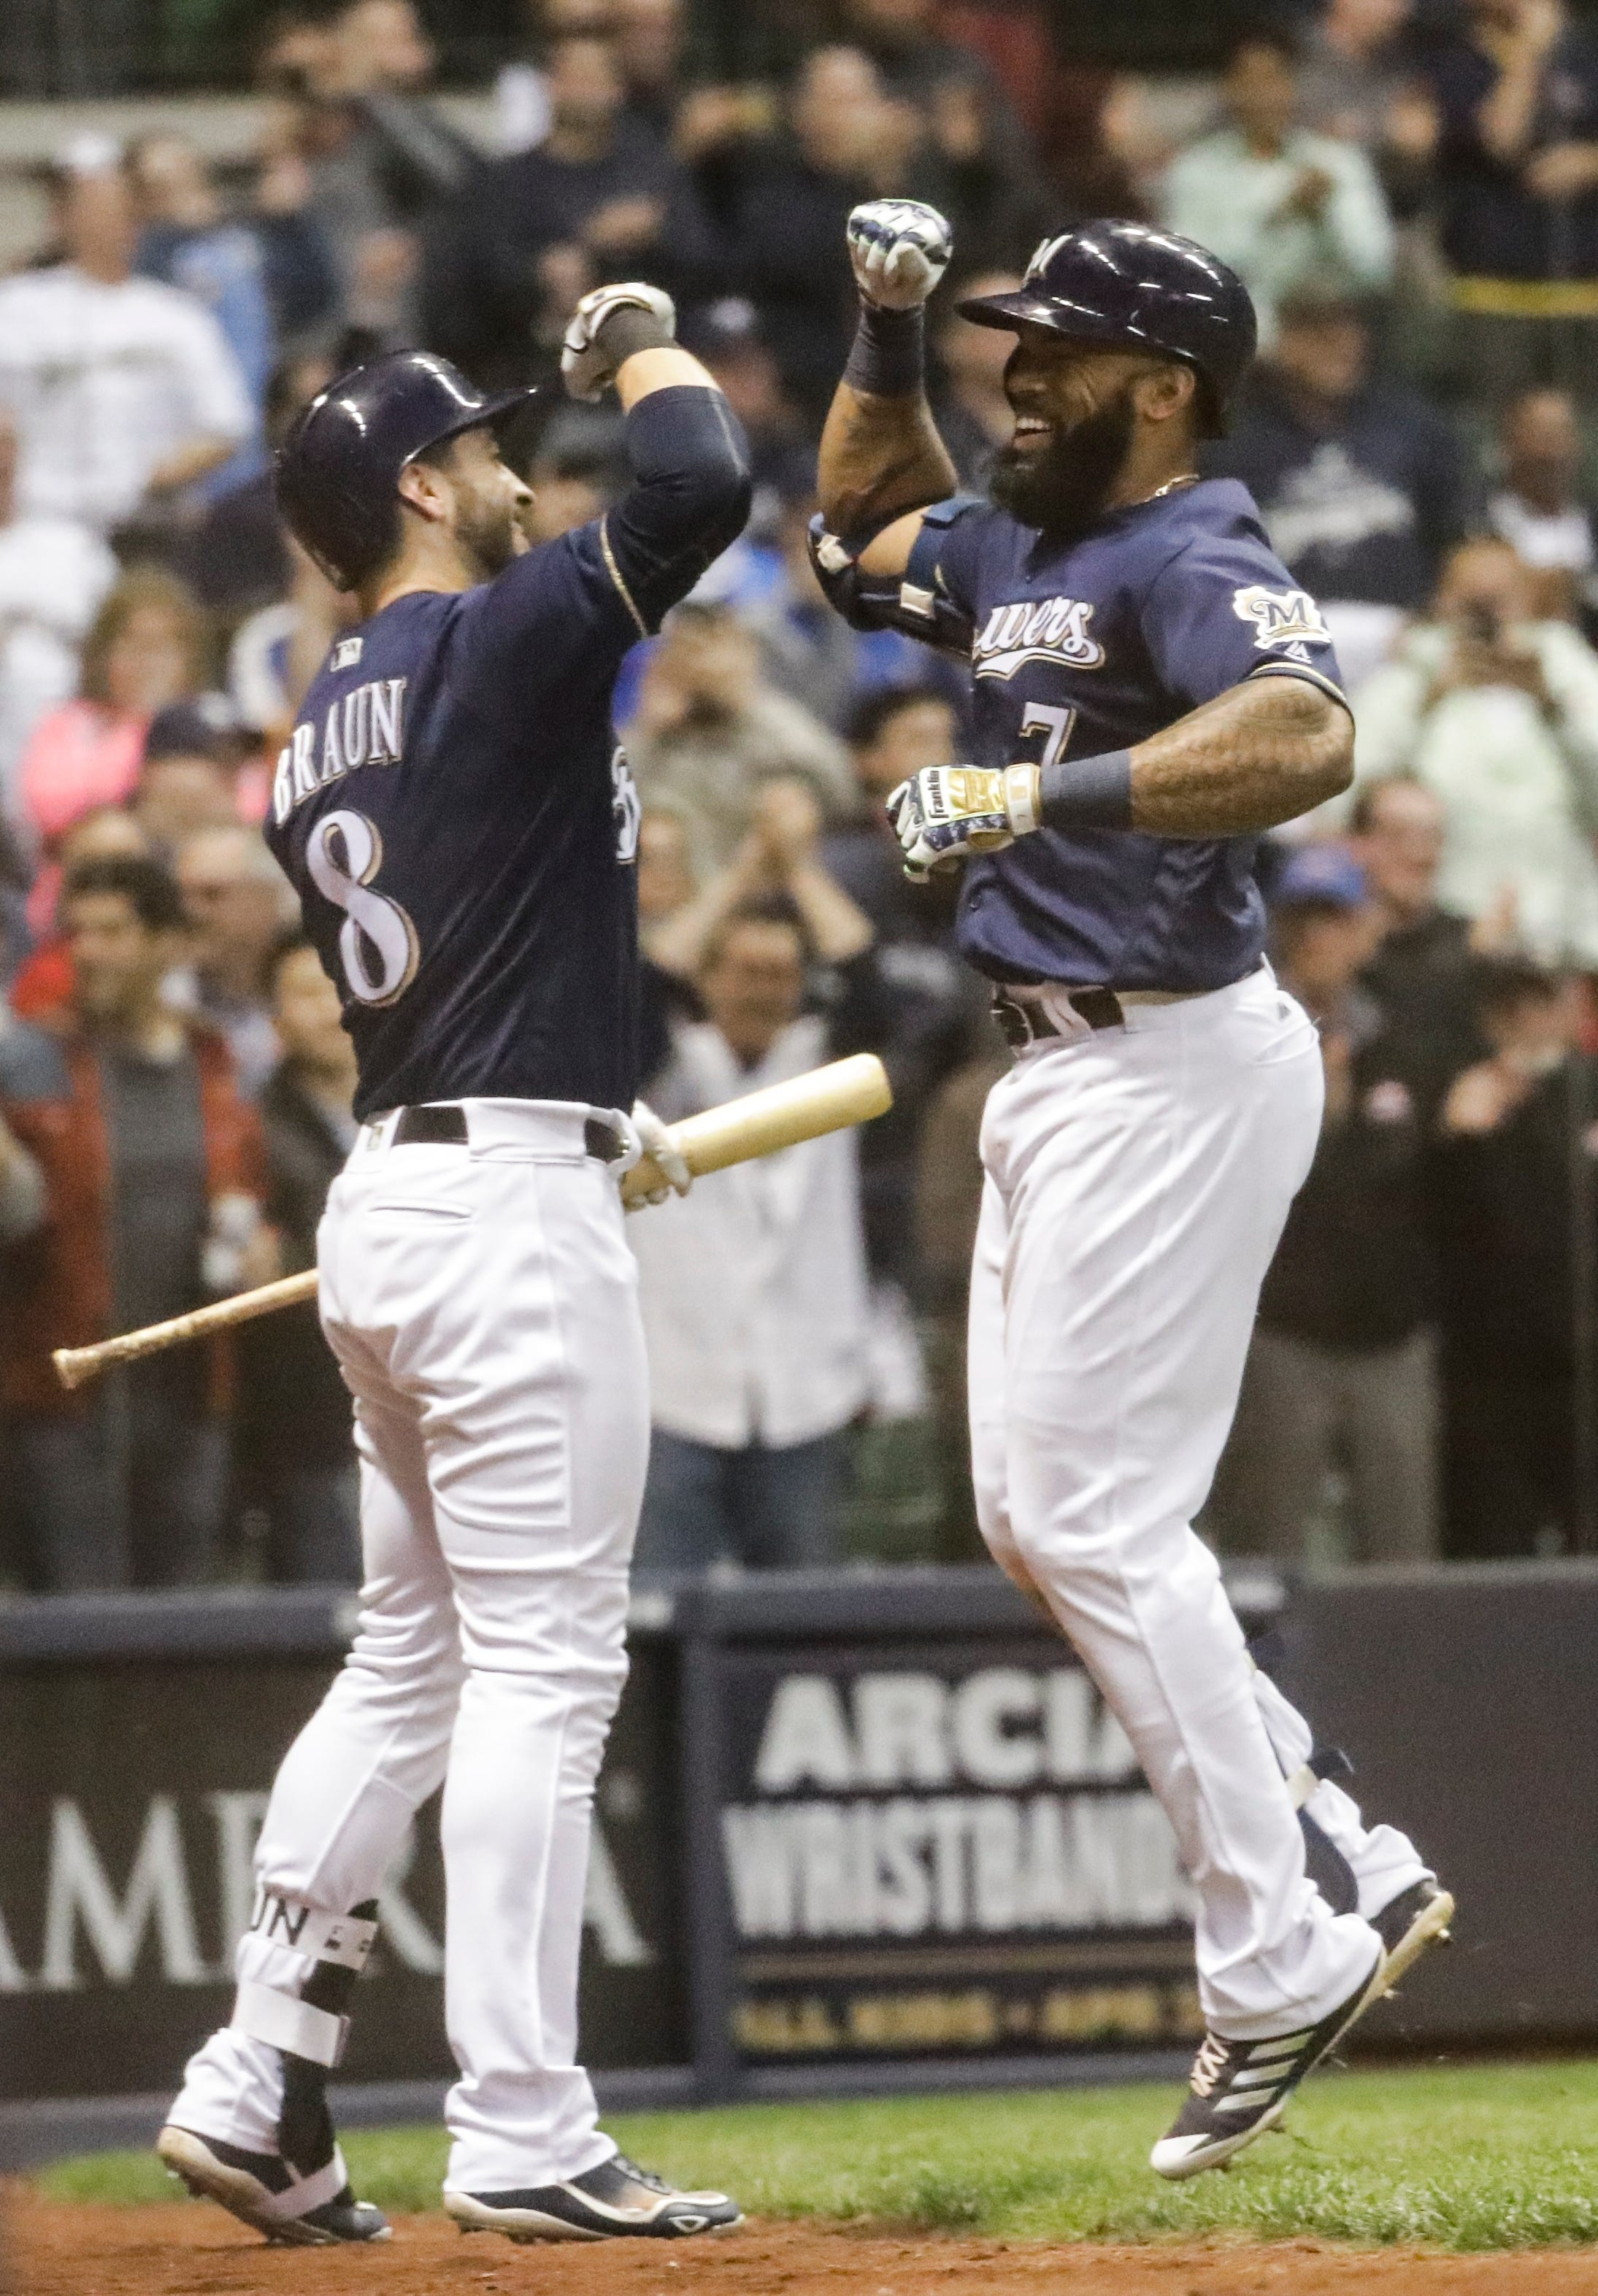 Brewers offense on a roll after Reds series